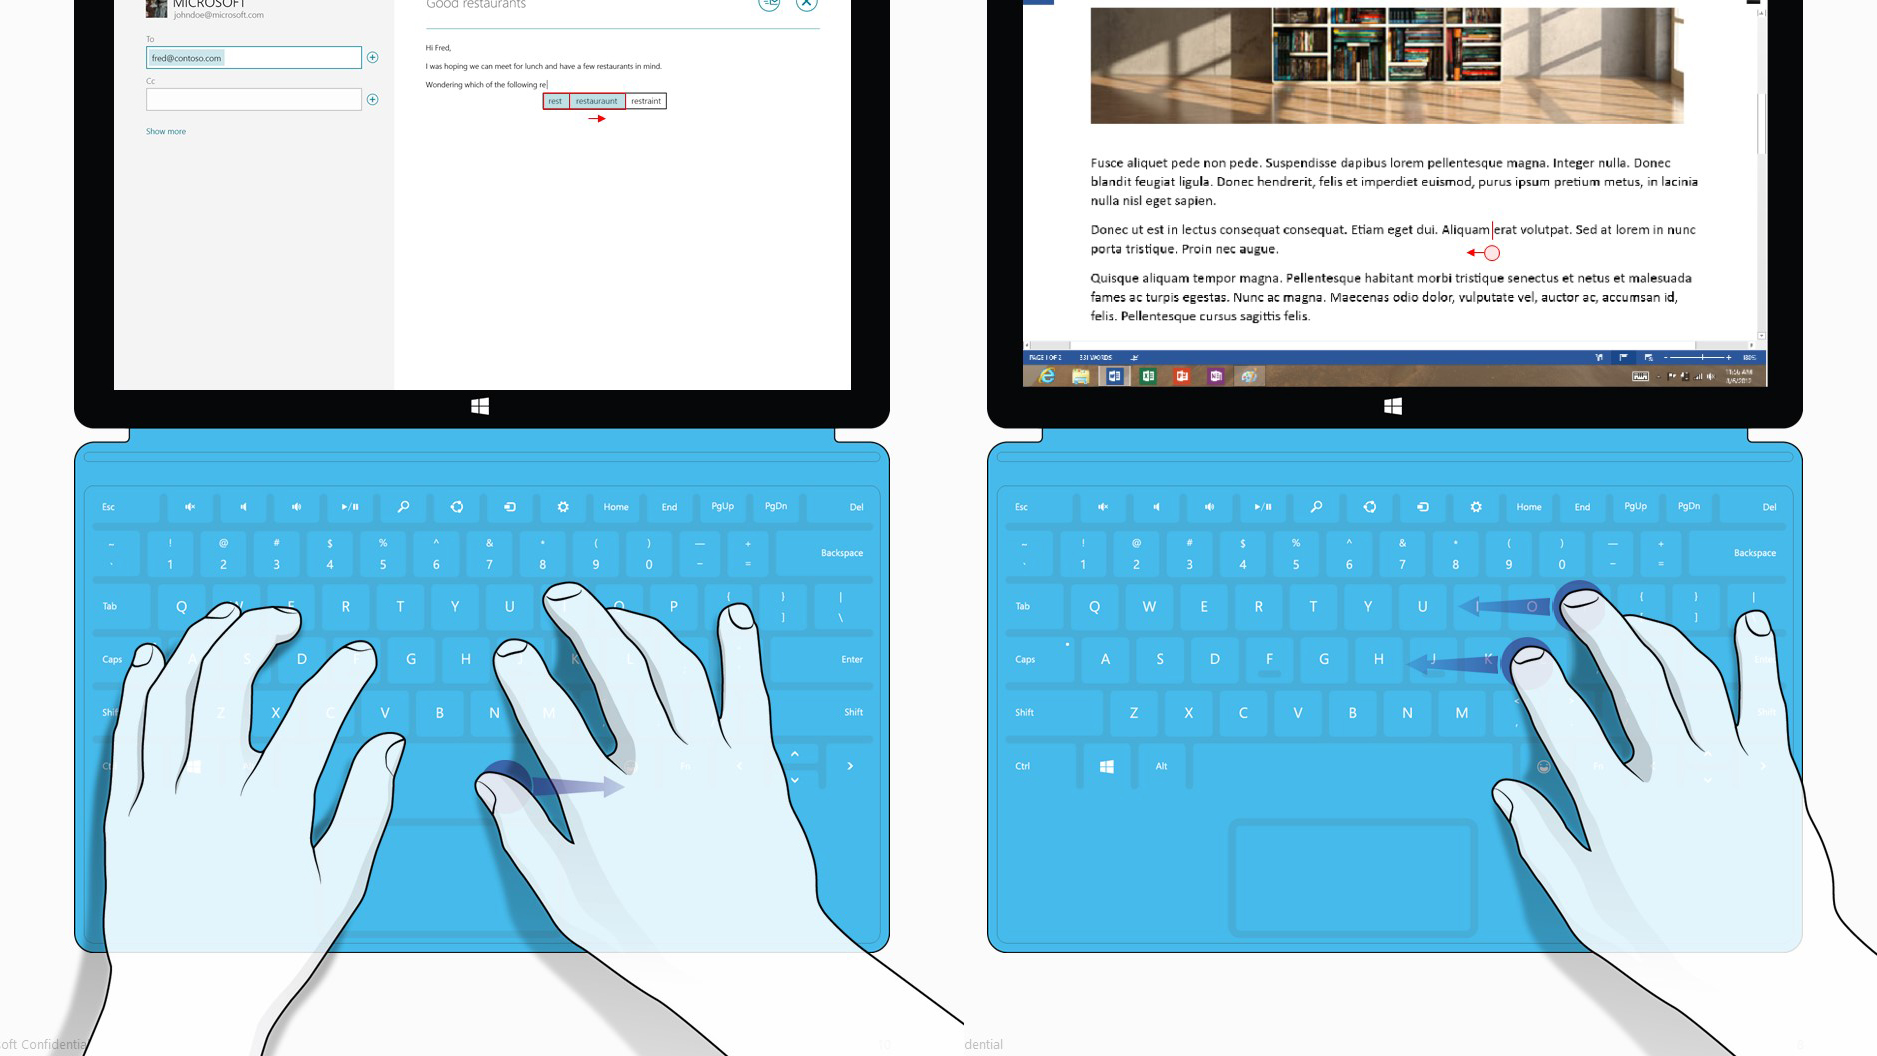 Microsoft Touch Cover 2 - Keyset gesture interactions